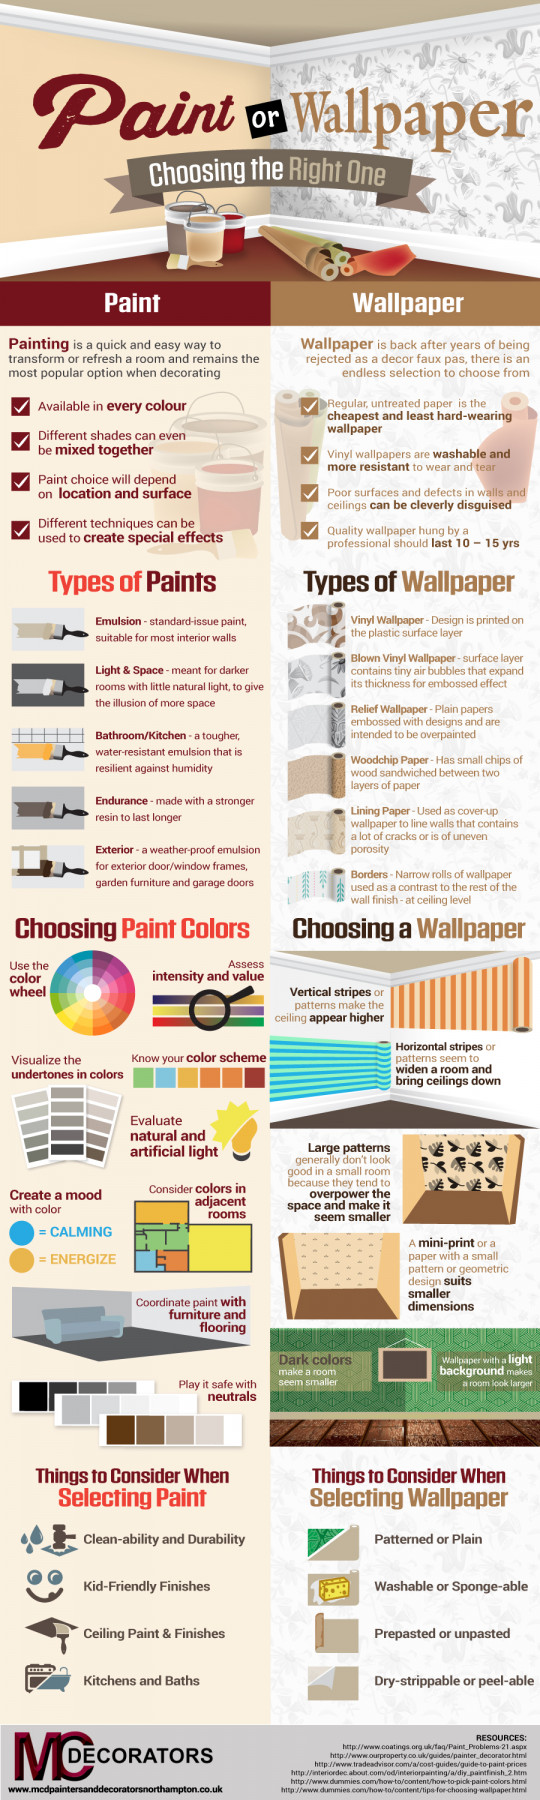 Paint or Wallpaper: Choosing the Right One